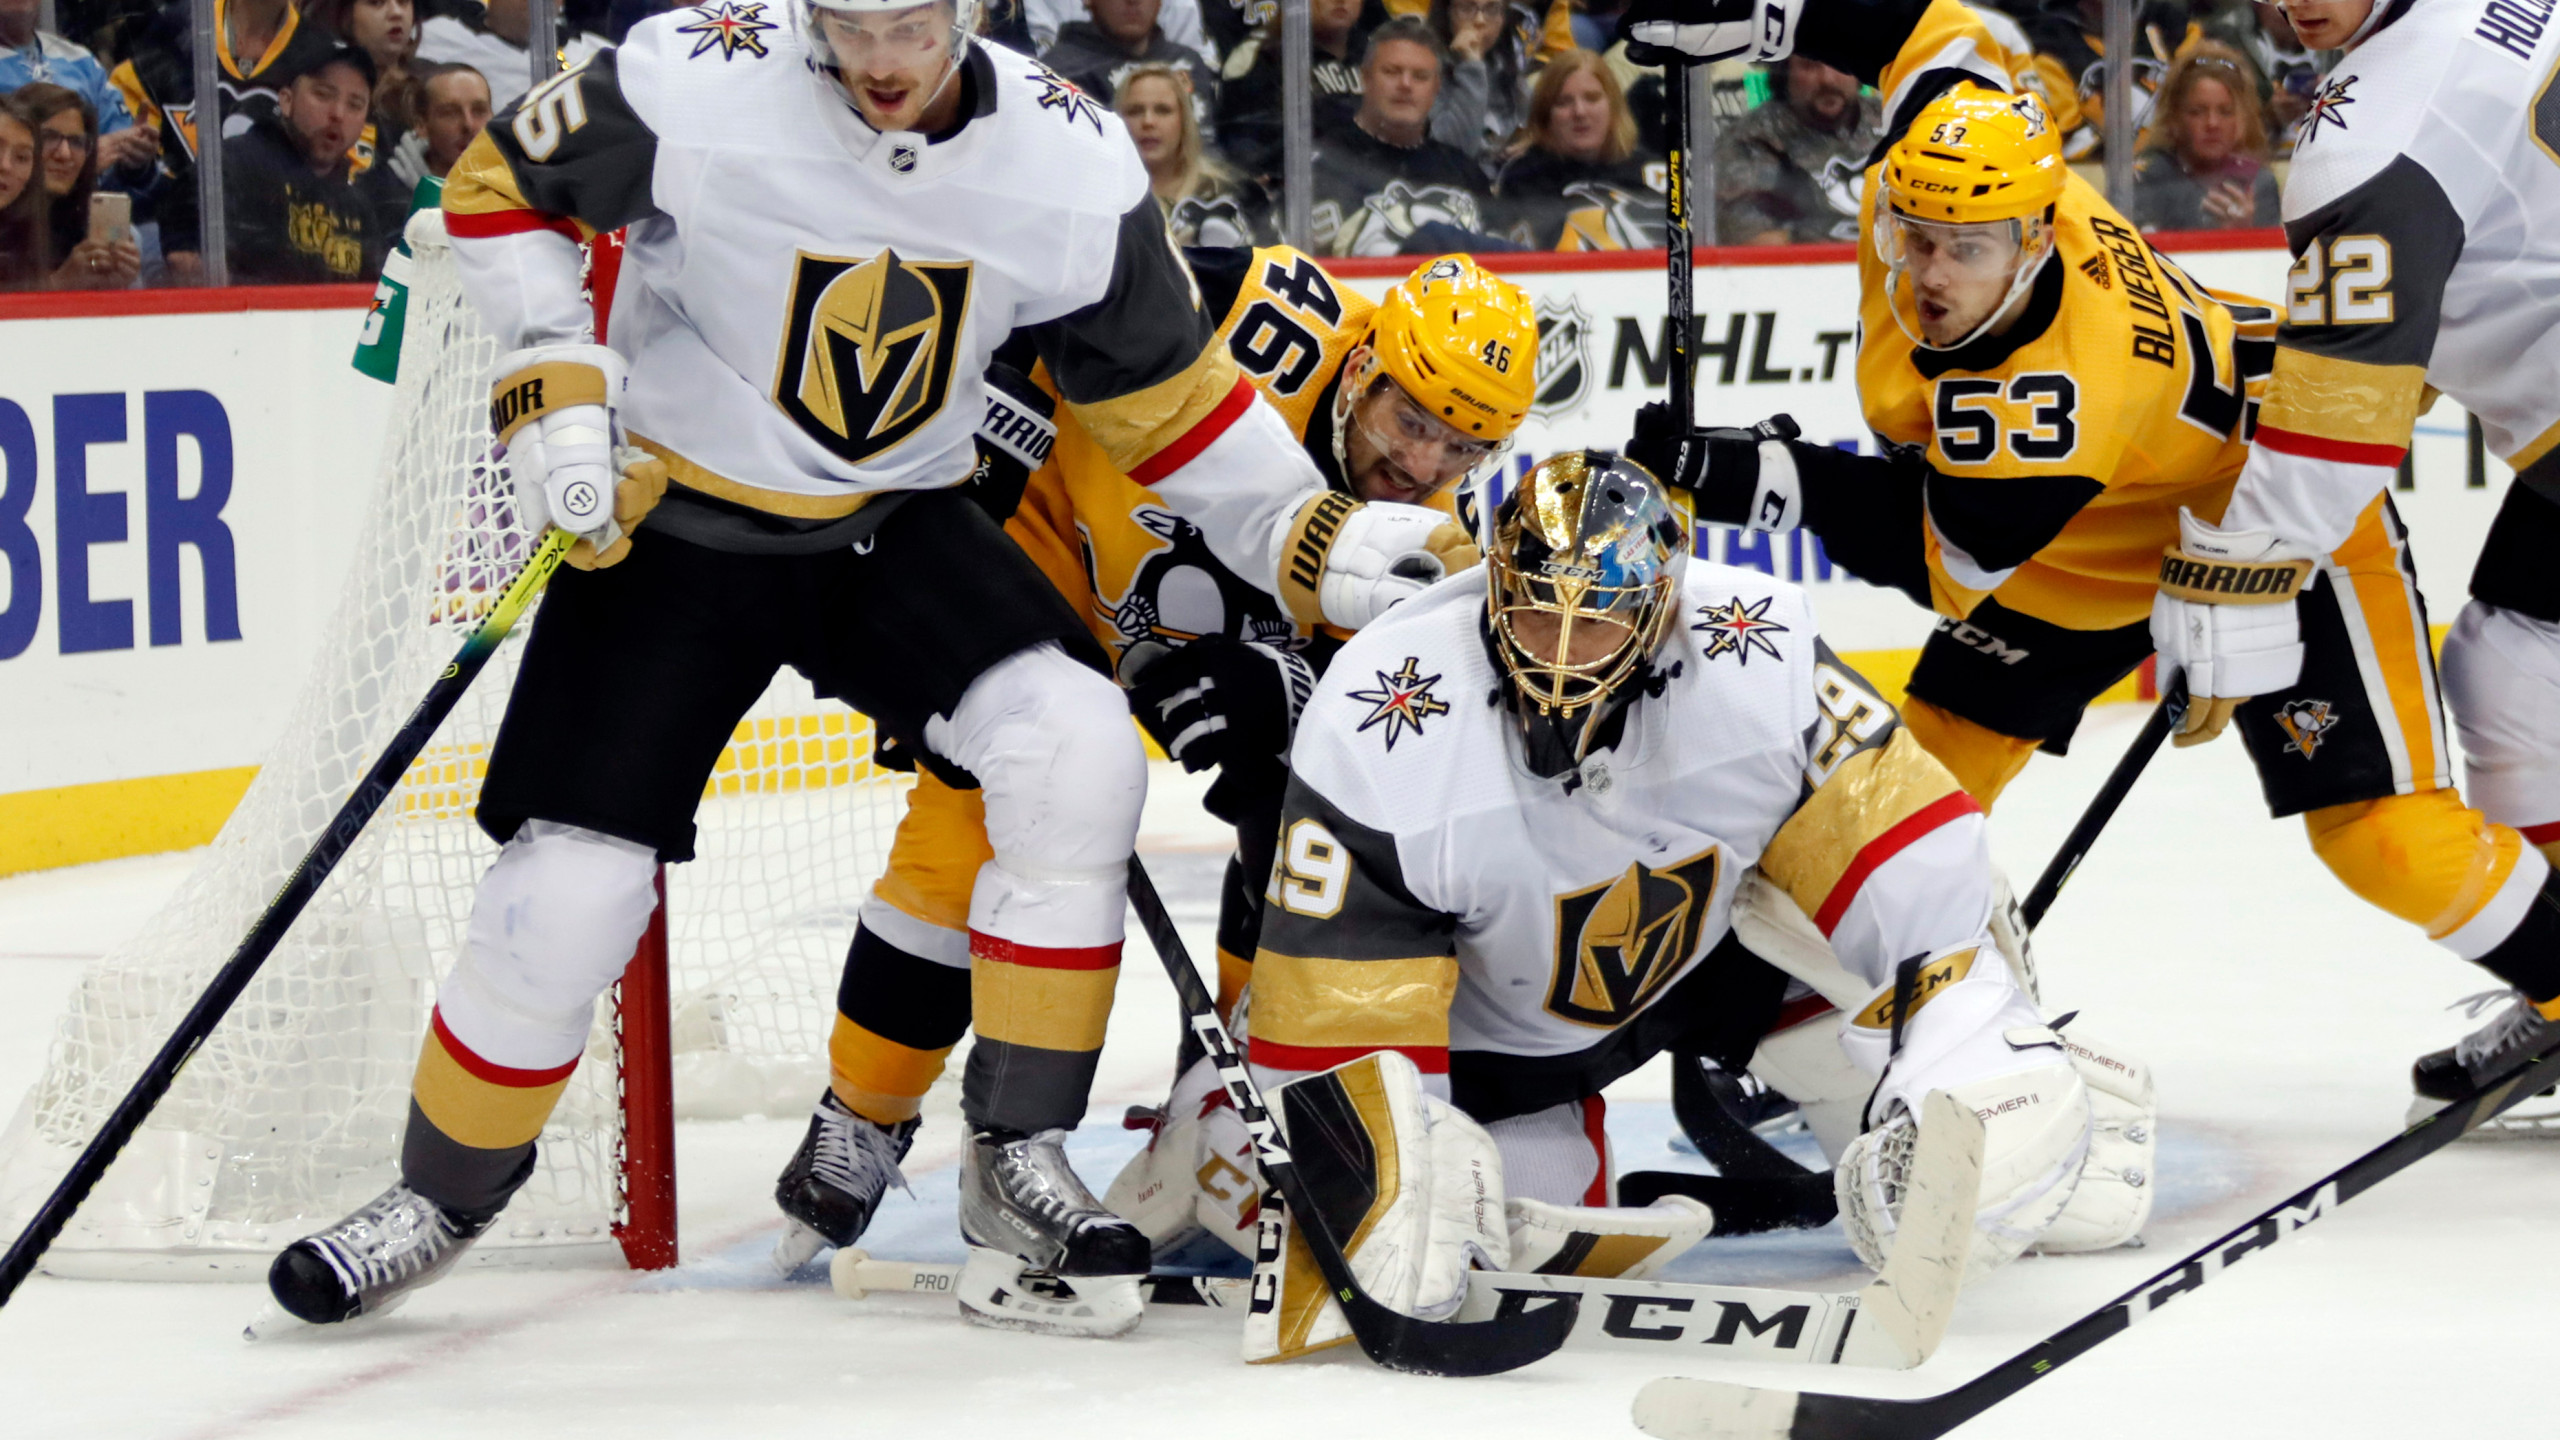 Fleury wins goalie duel, leads Vegas to 3-0 win over Penguins